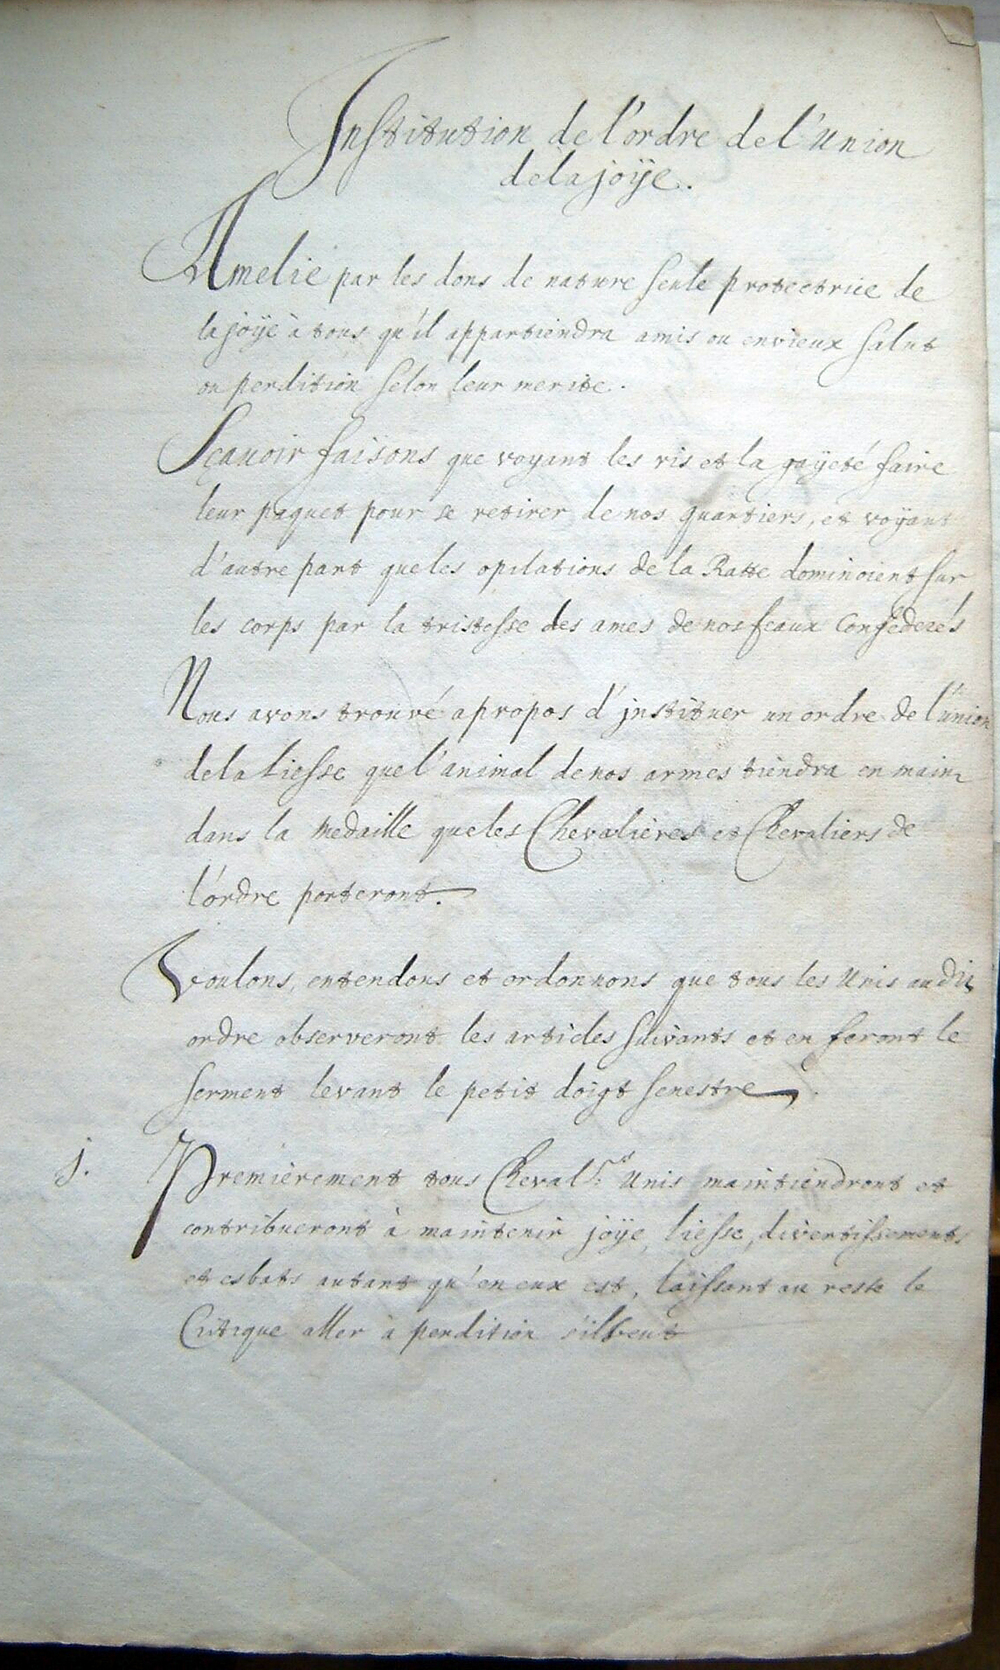 First page of the regulations of the Order of the Society of Joy, Archive Amalia van Solms, 14 AXIII, 21, Royal Archives, The Hague, The Netherlands